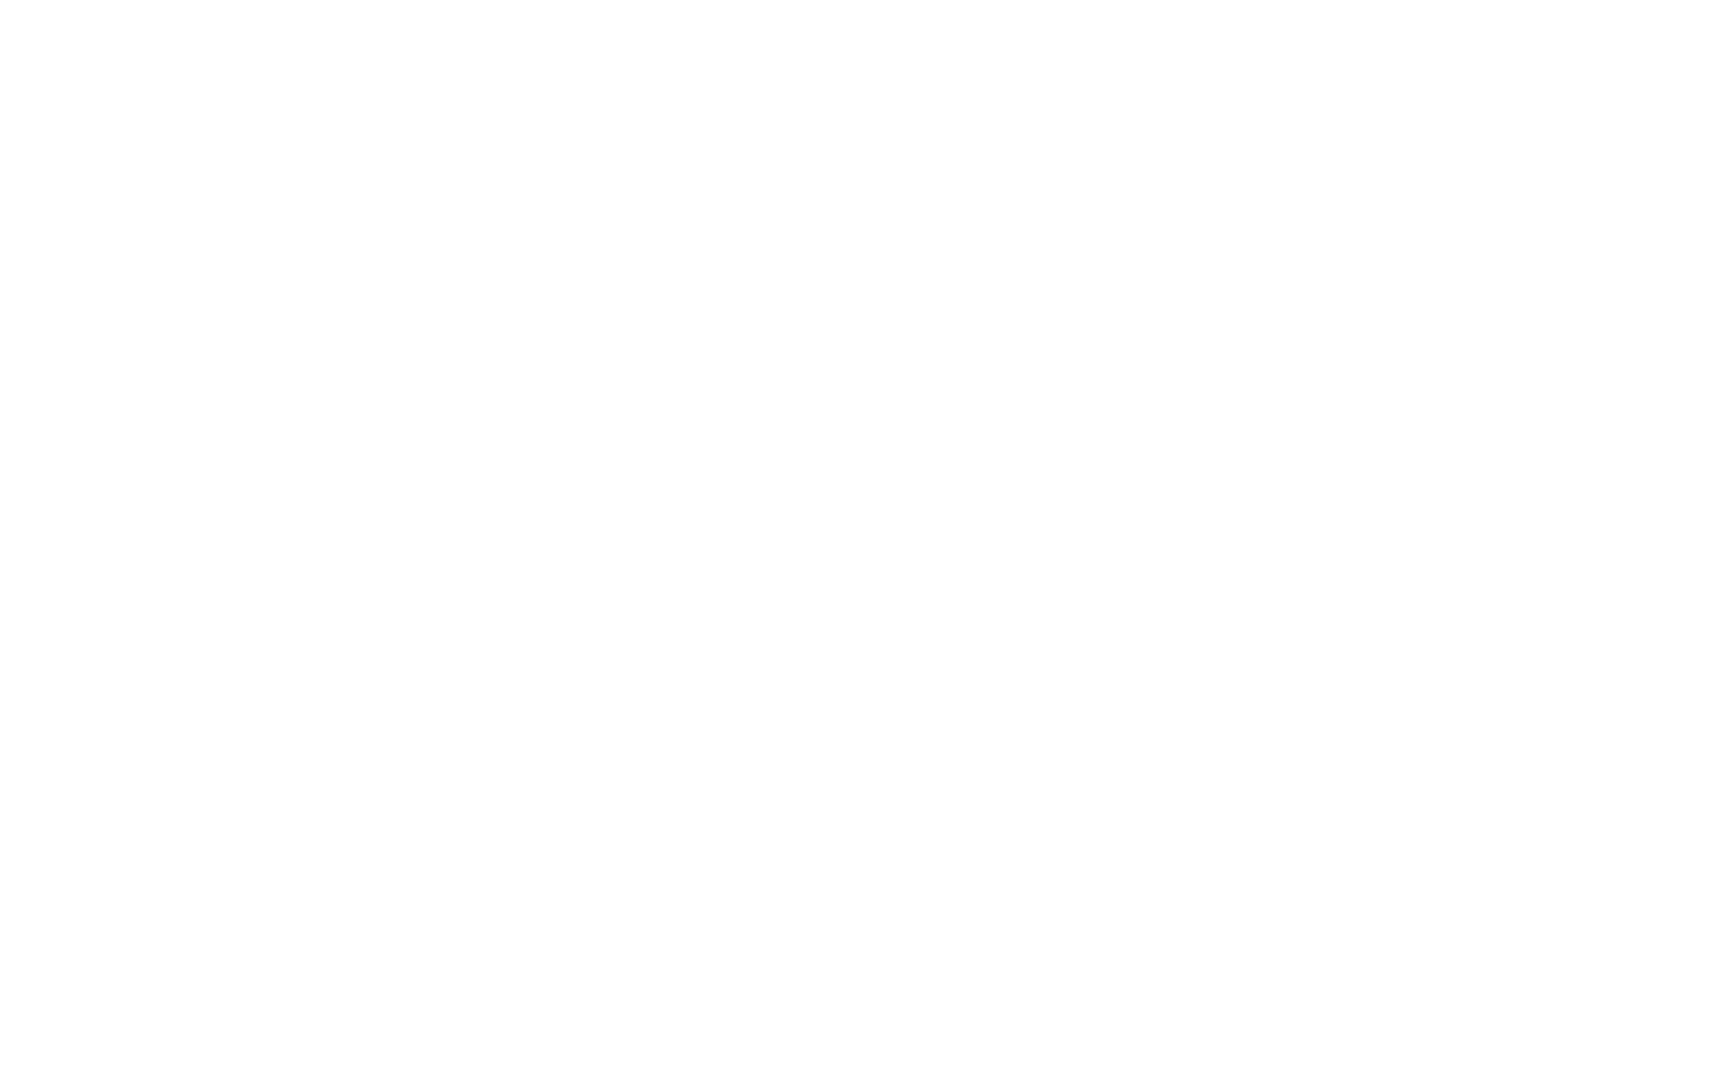 Wolfe Autogroup